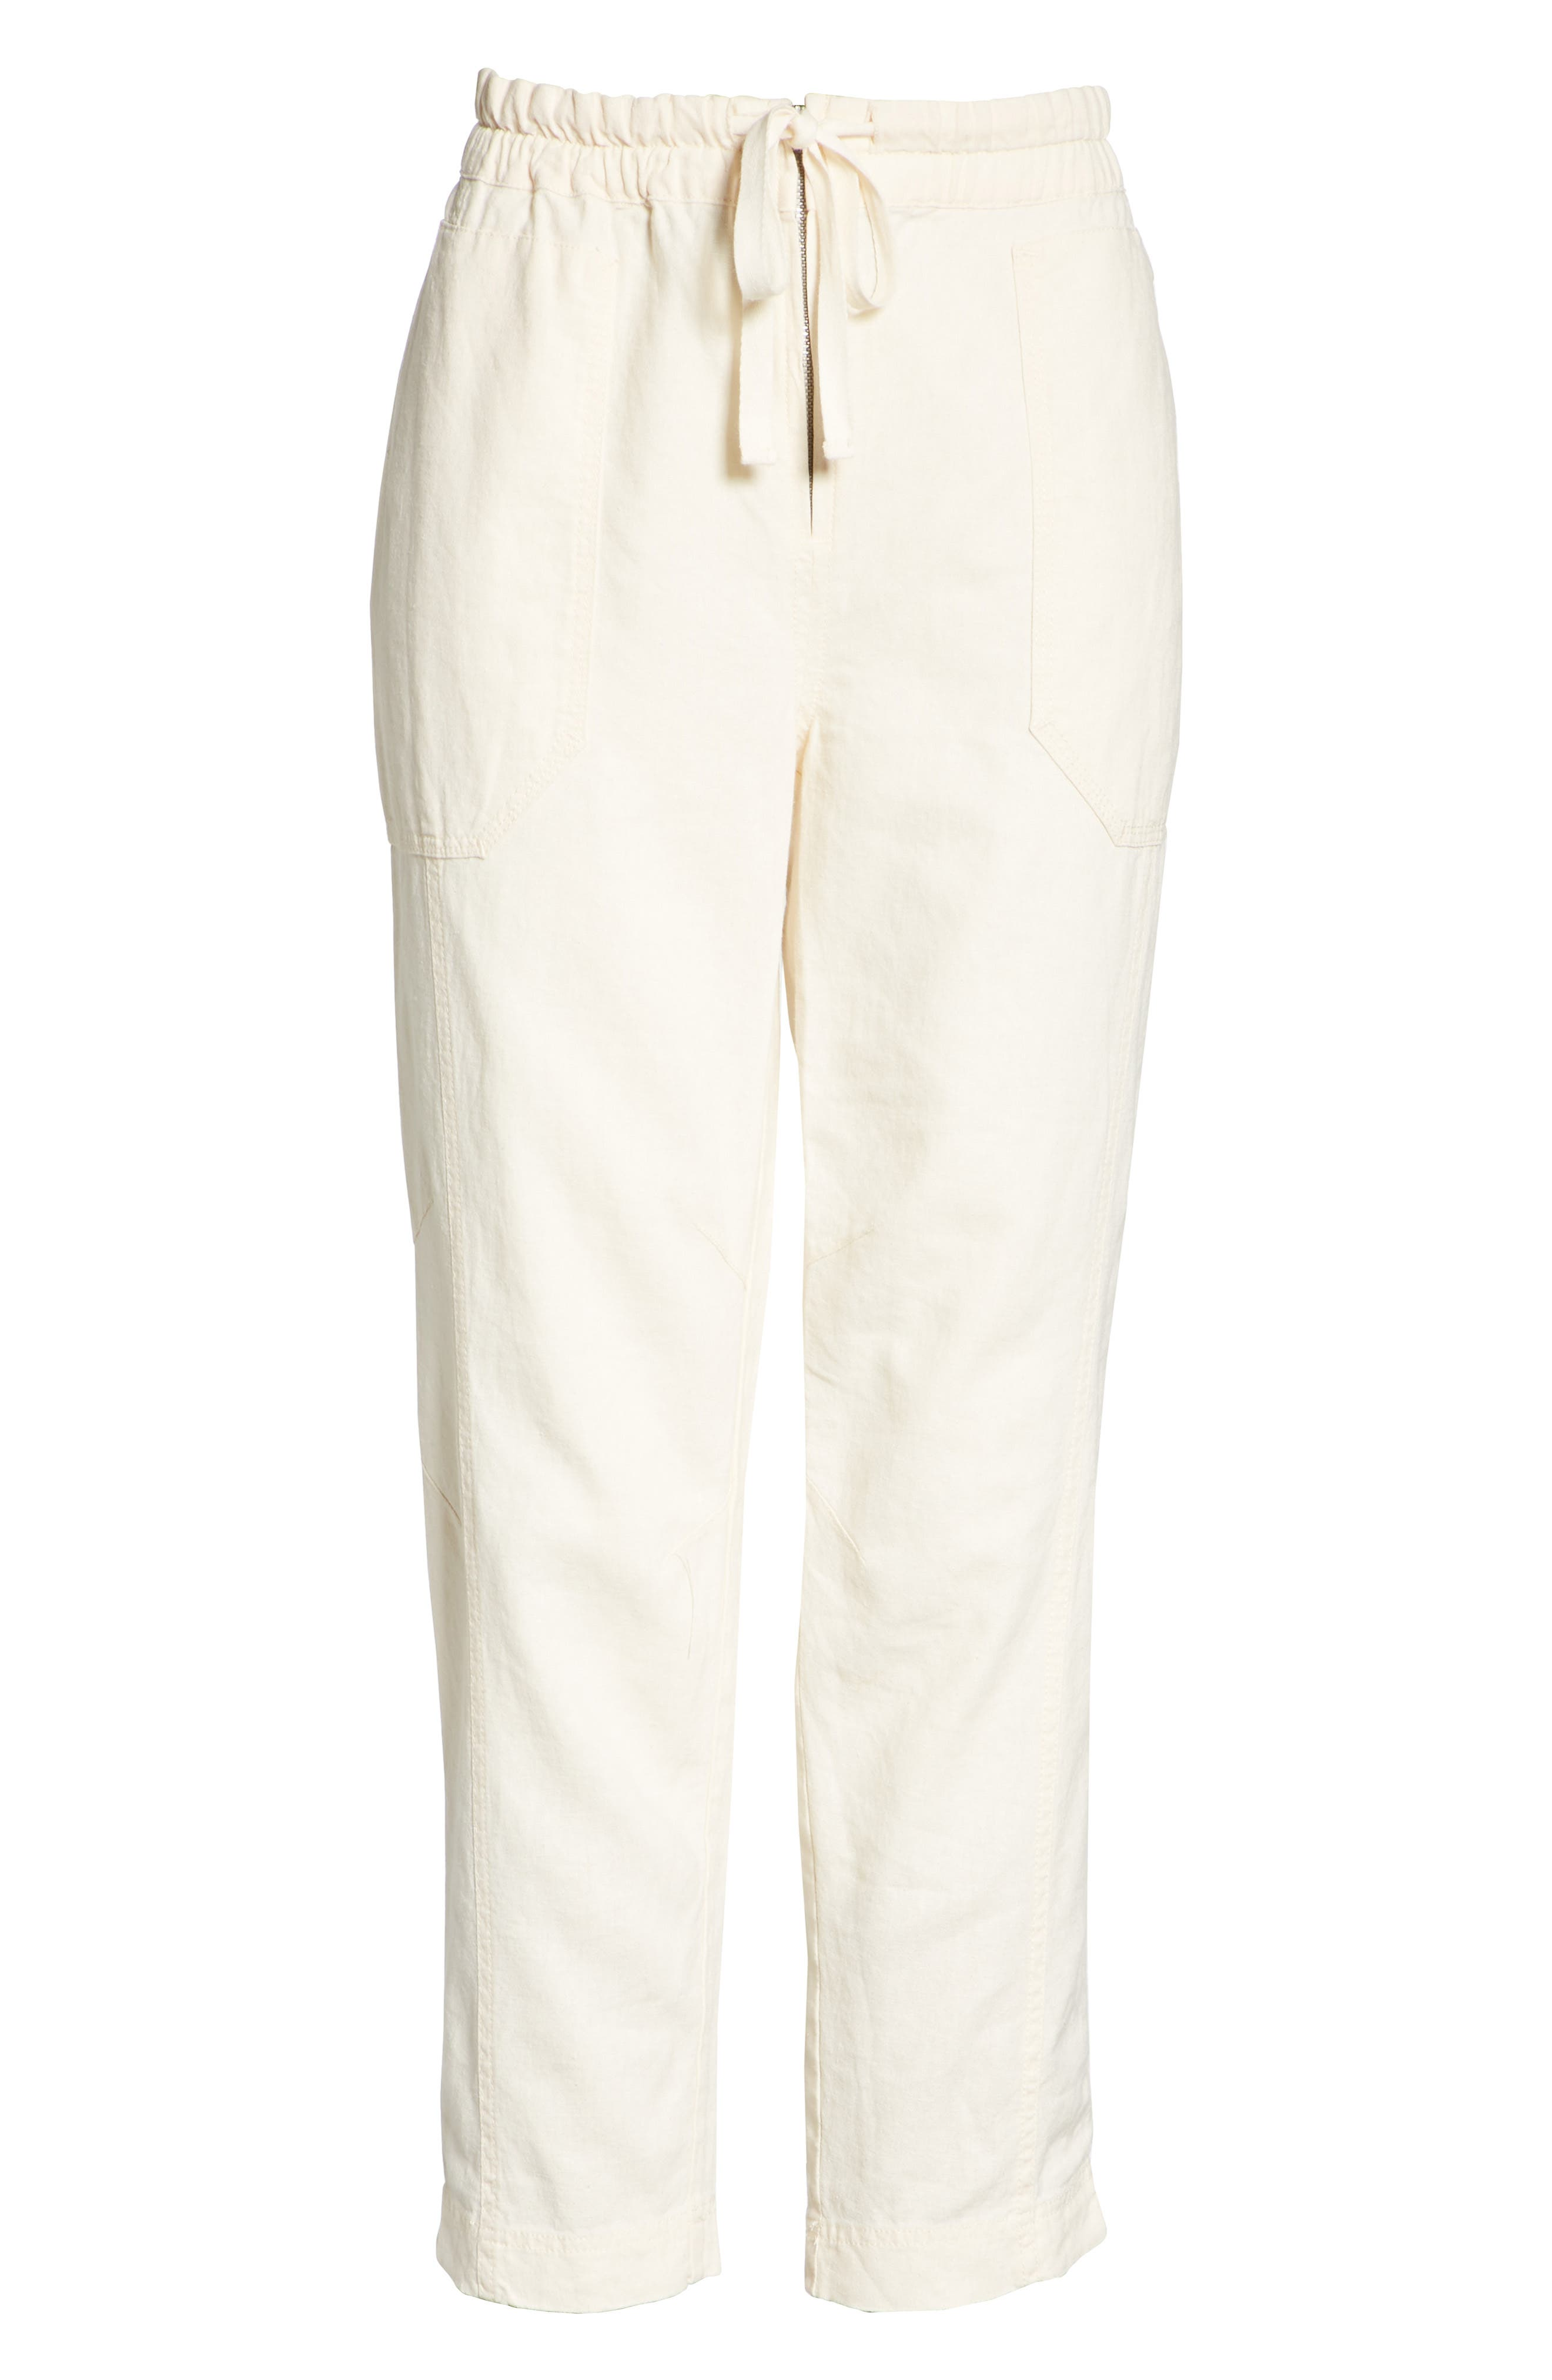 Palmer Skinny Utility Pants,                             Alternate thumbnail 6, color,                             Ivory